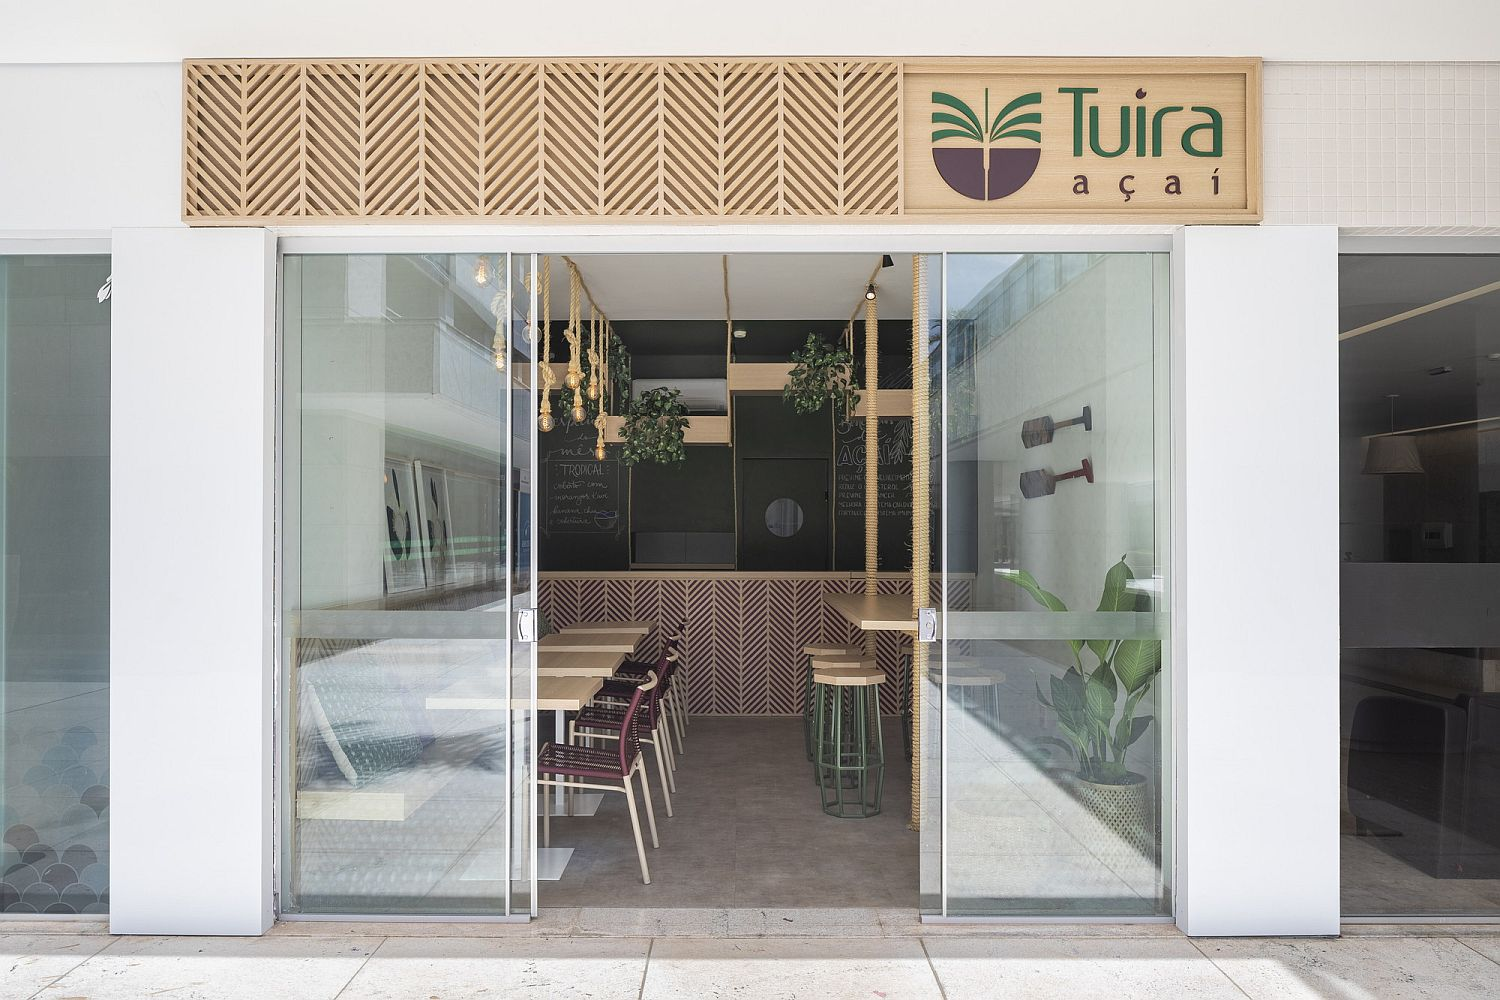 Facade of Tuira Acai with a revamped new look